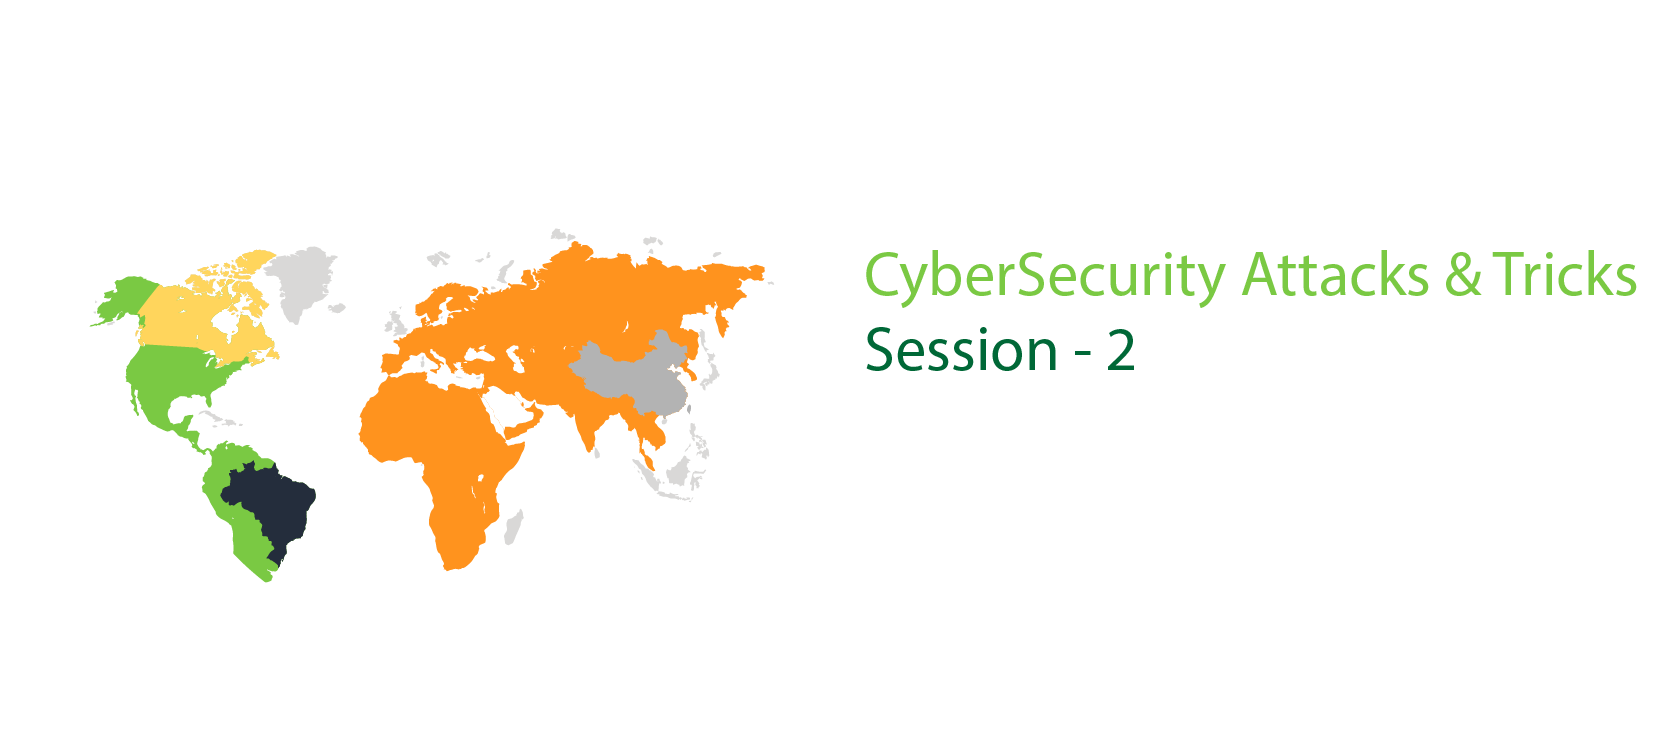 Concepts-&-techniques-to-find-vulnerability-and-prevent-the-cyber-attacks-(Session-2).